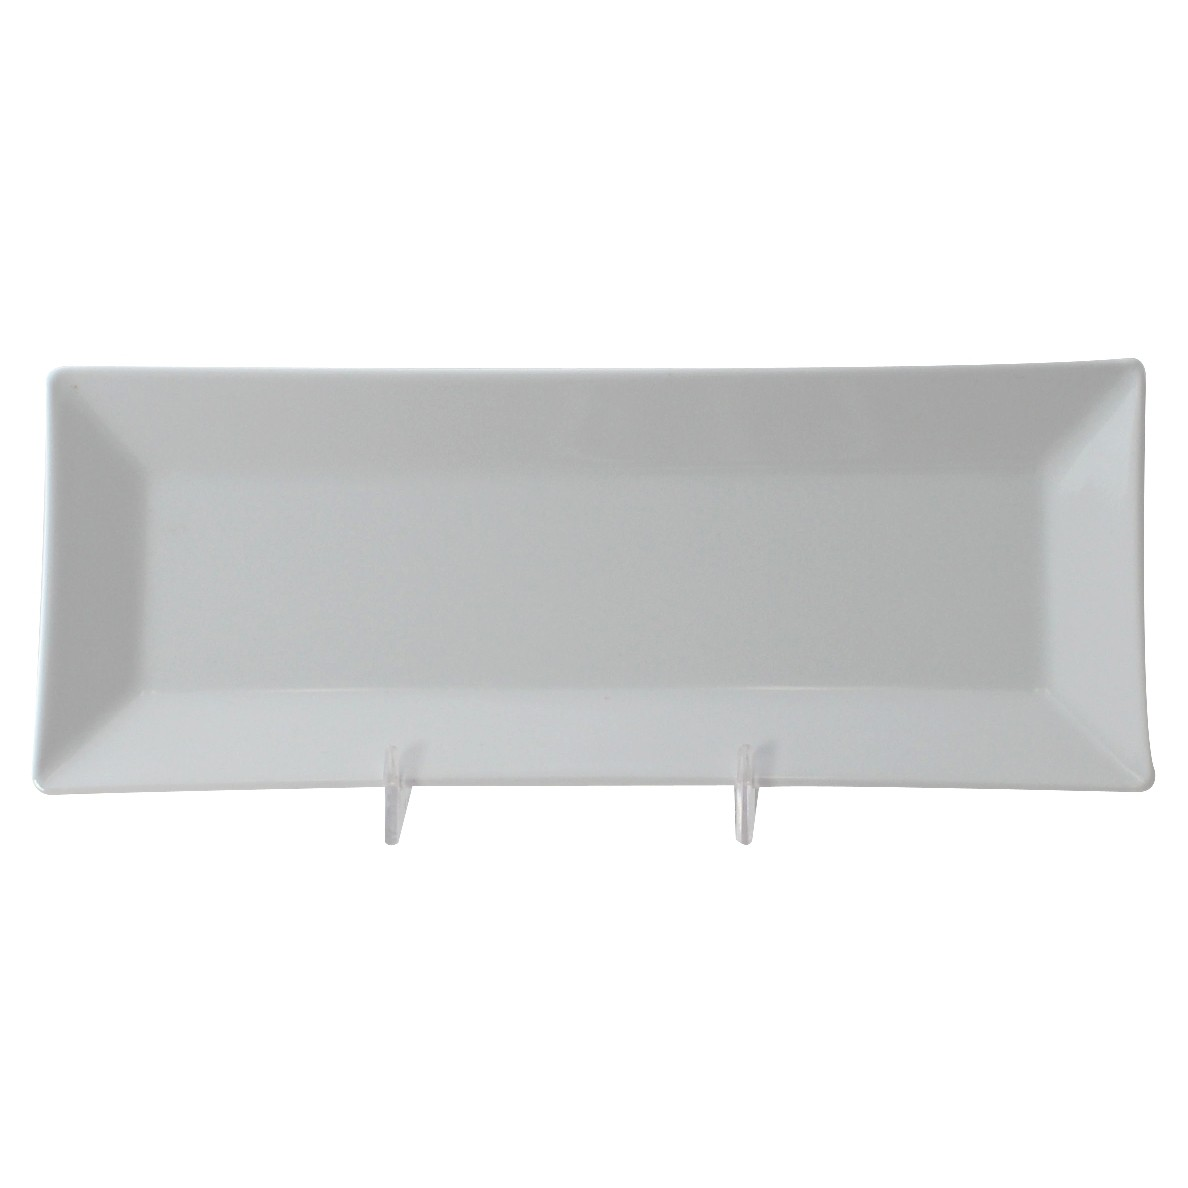 "Thunder Group 29110WT Classic White Melamine Rectangular Plate 10-1/4"" x 4"""